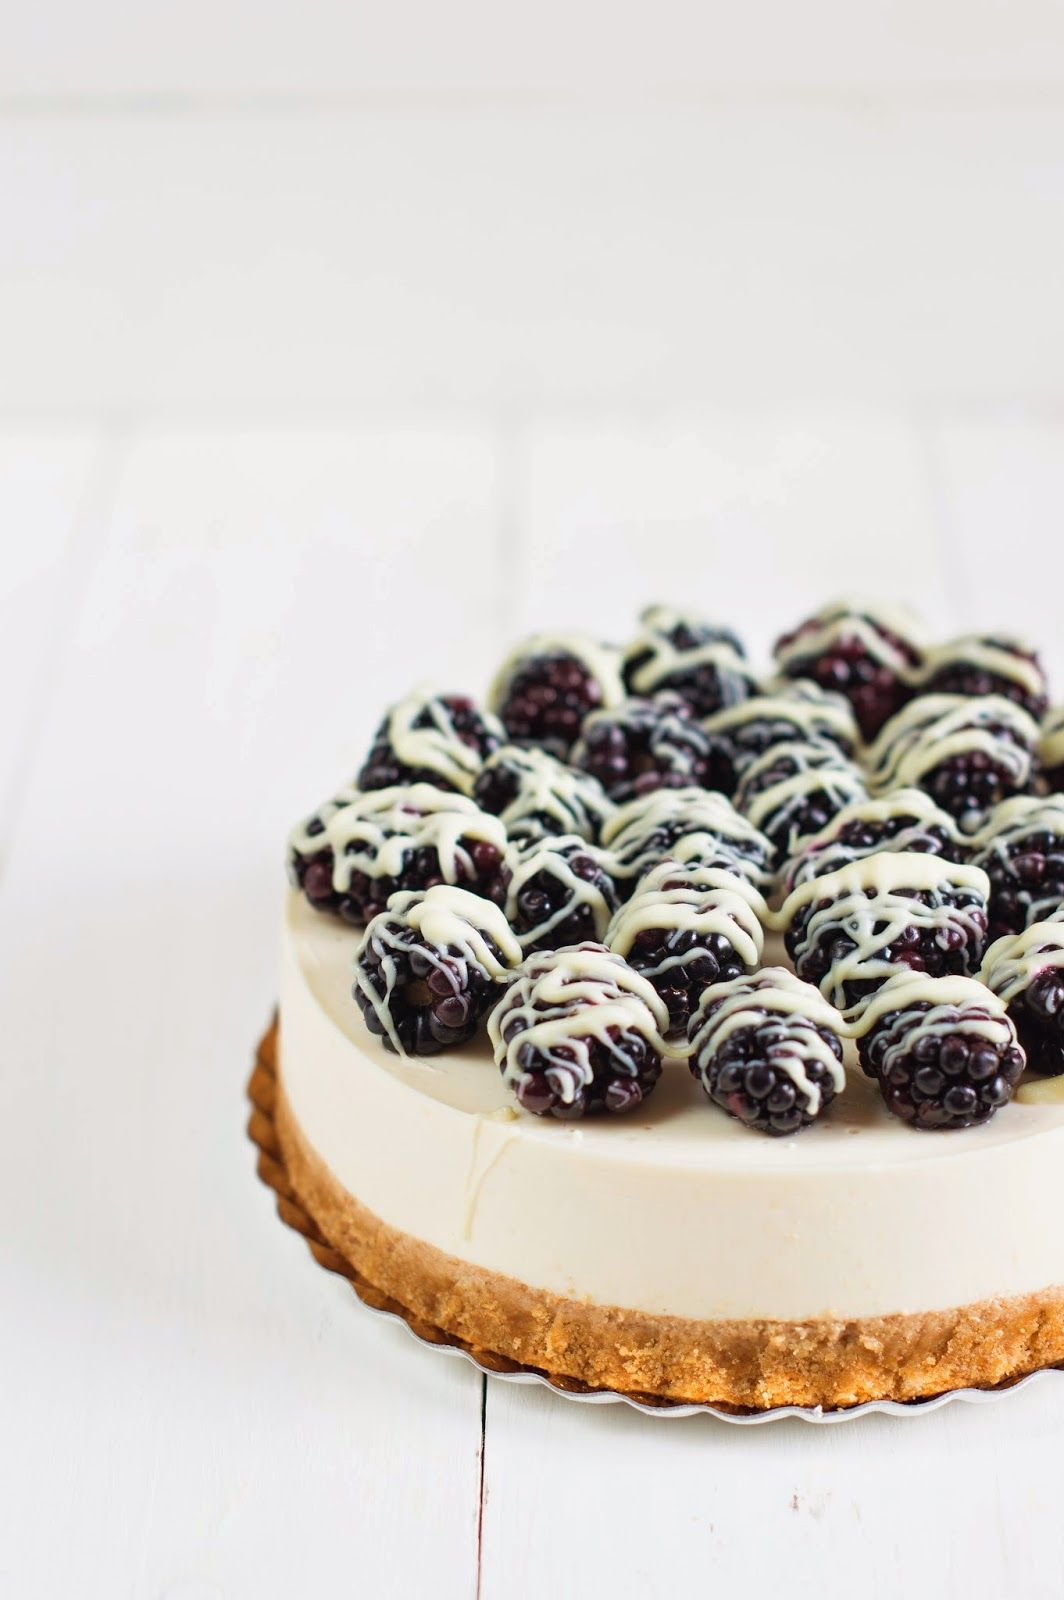 Raw Cheesecake and blackberries